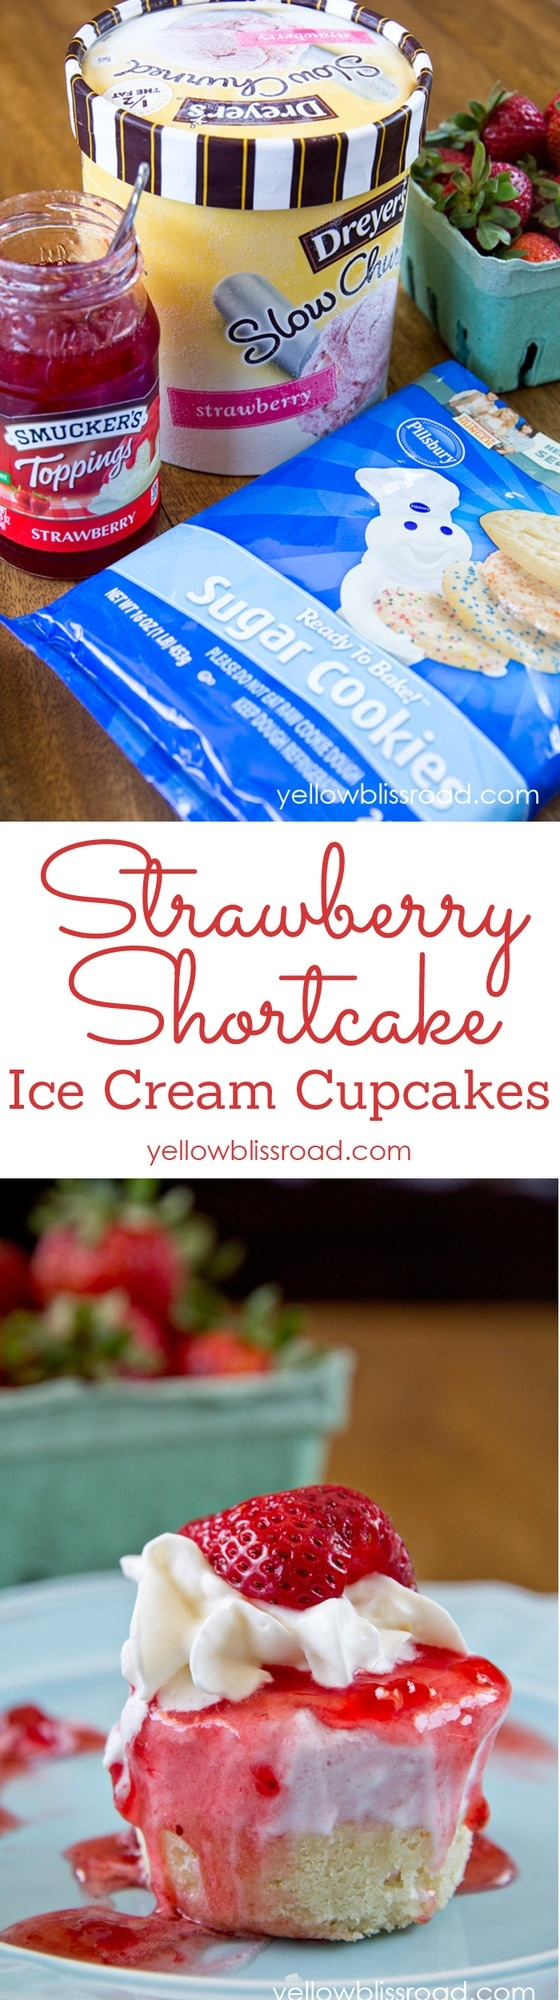 Strawberry Shortcake Ice Cream Cupcakes